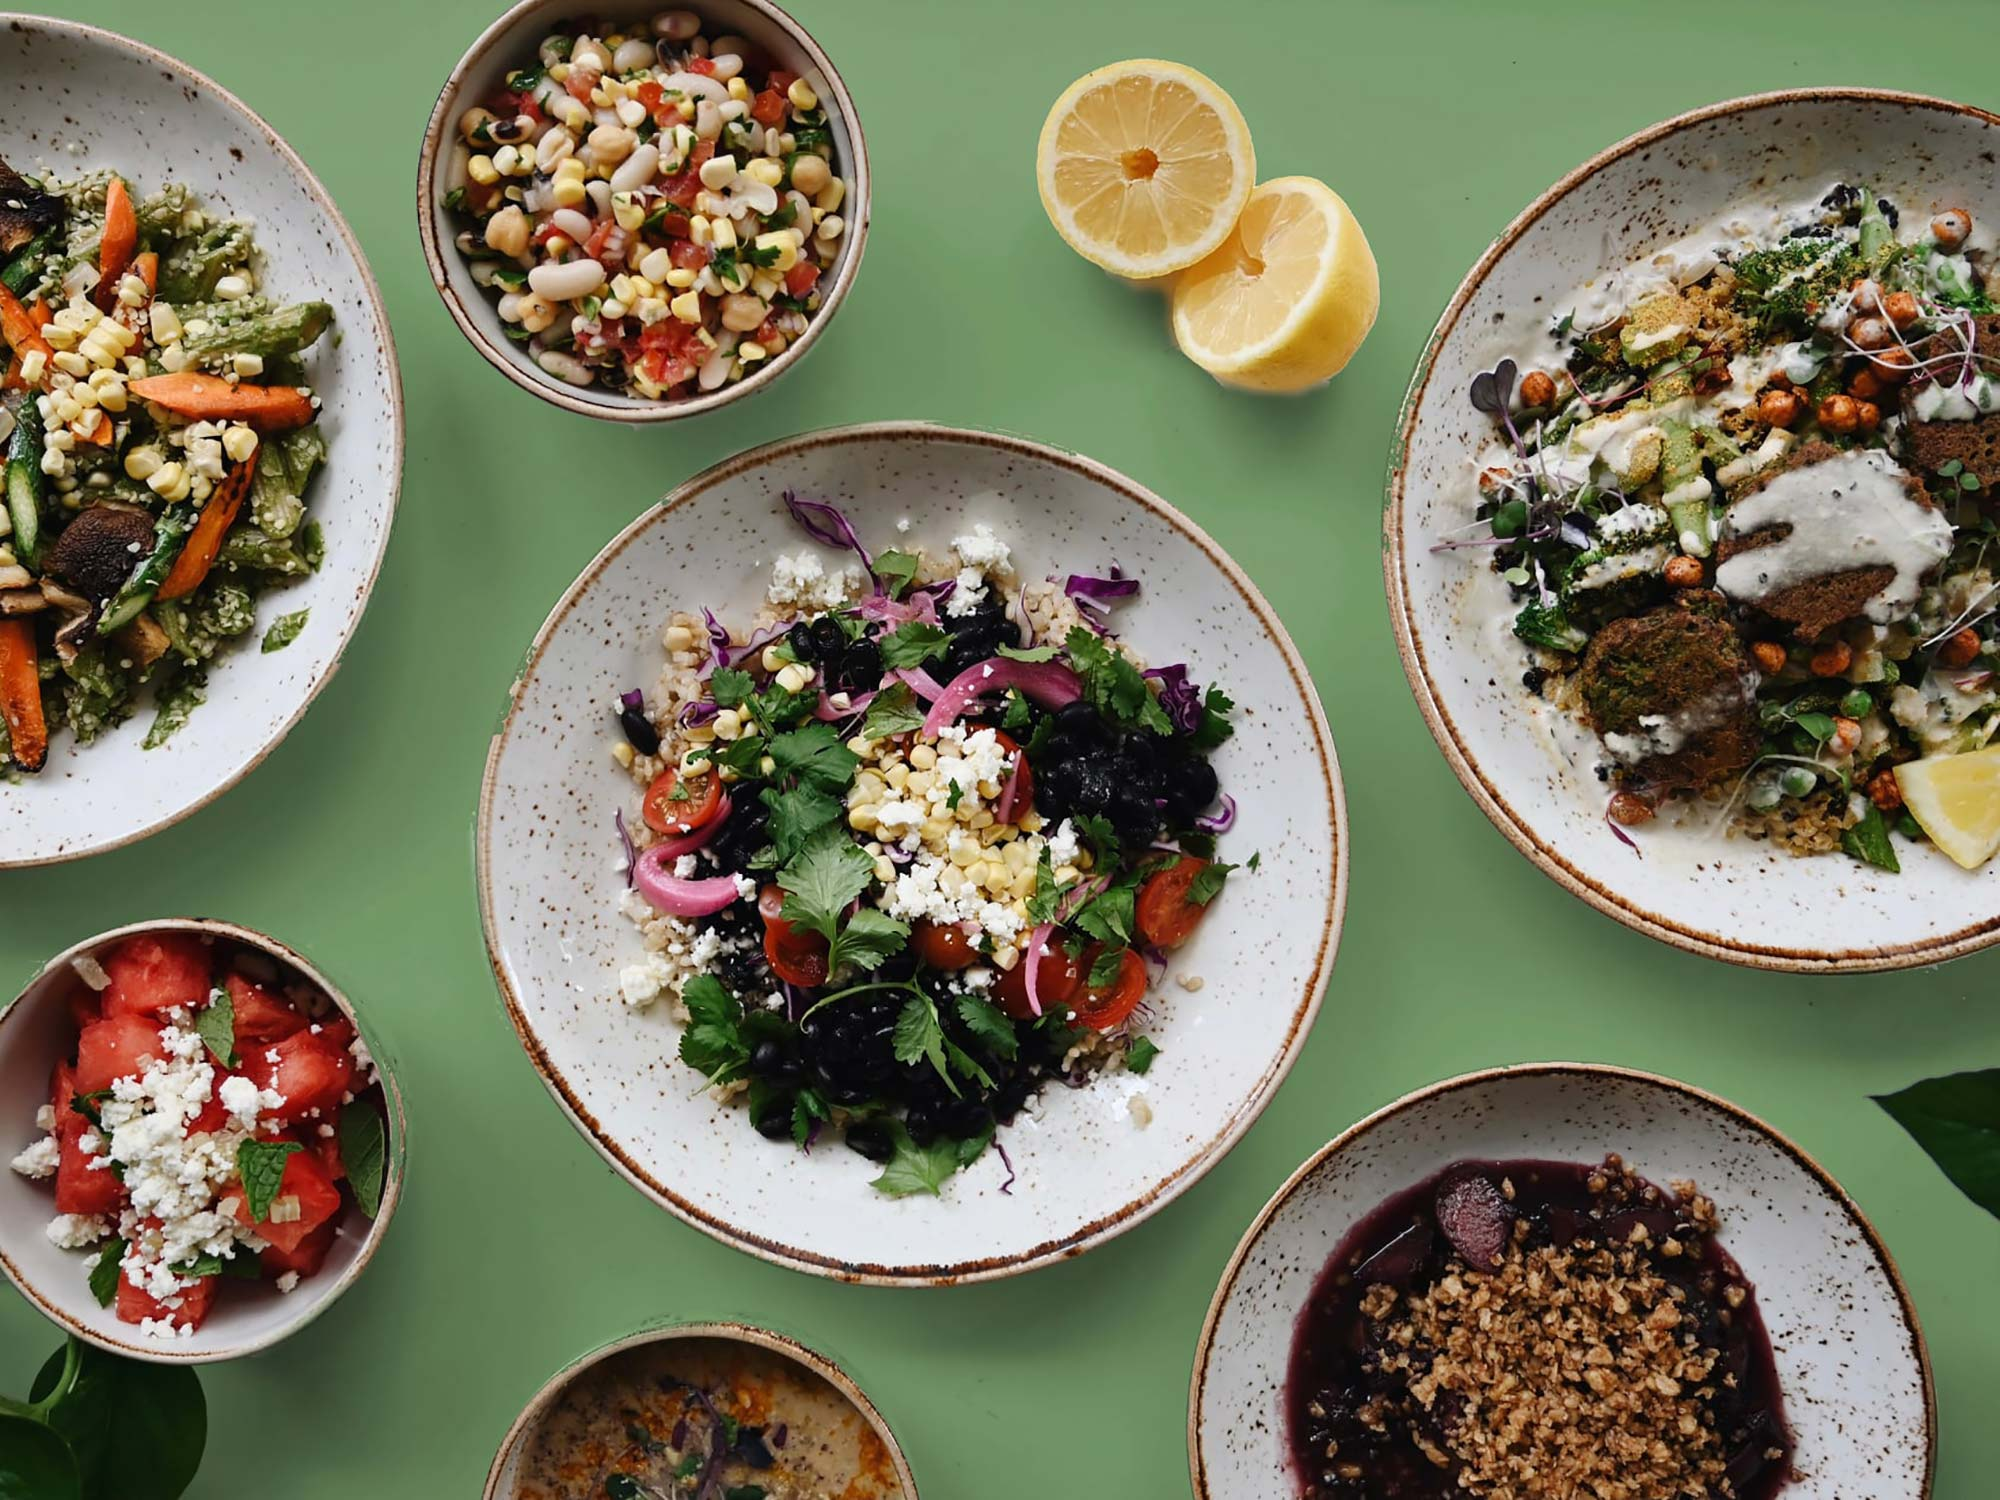 Photo of Life Alive Spring Meal Plan.  The photo shows several rustic-looking bowls filled with greens, vegetables, falafel and other ingredients, topped with a cheese or sauce.  The plates rest on a green surface.